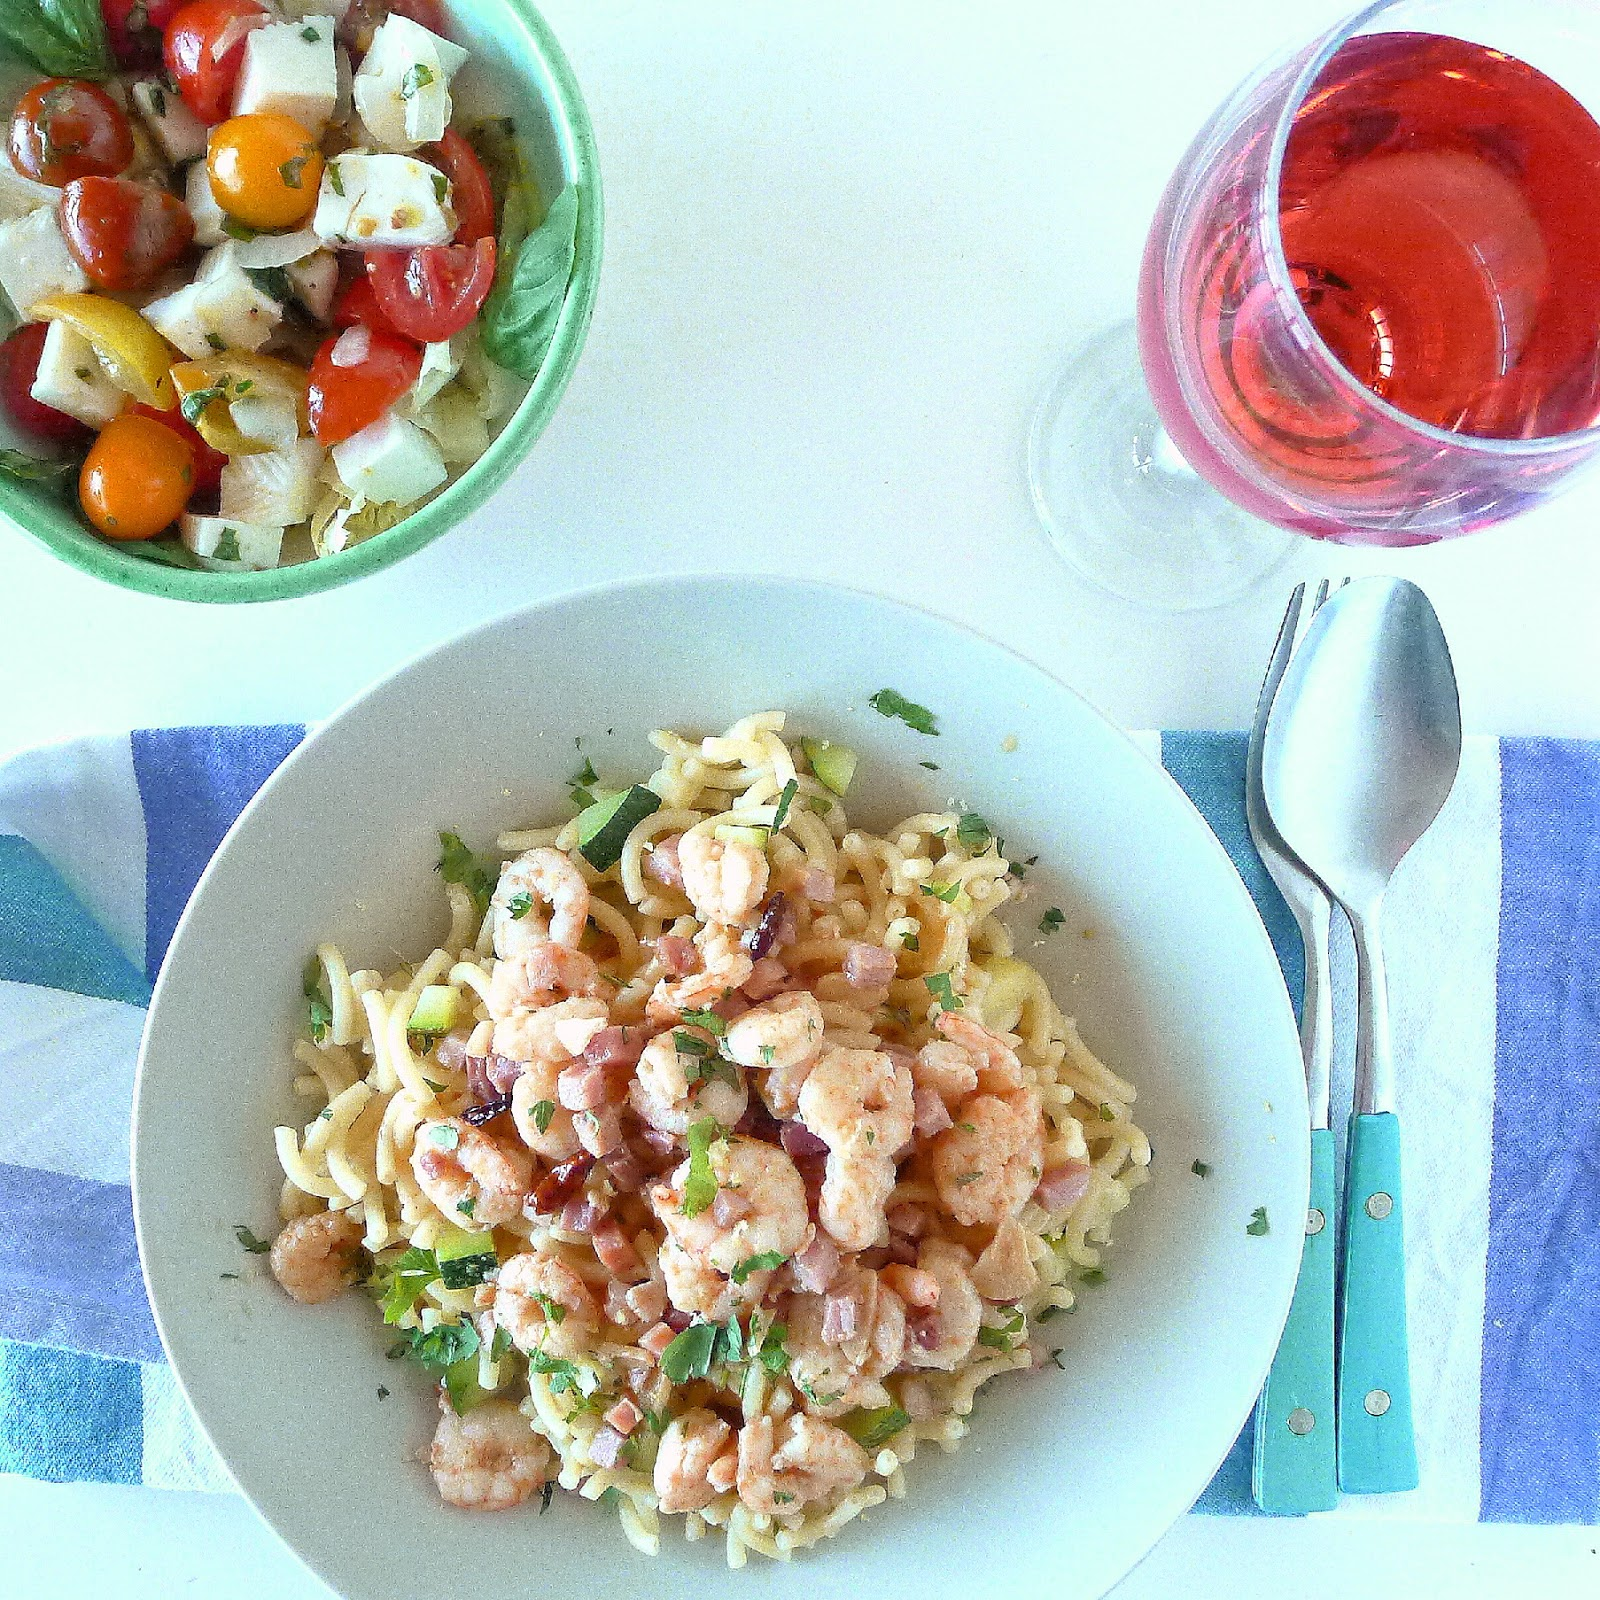 MY KITCHEN IN SPAIN: FAST FOOD FOR SUMMER, MENU 2